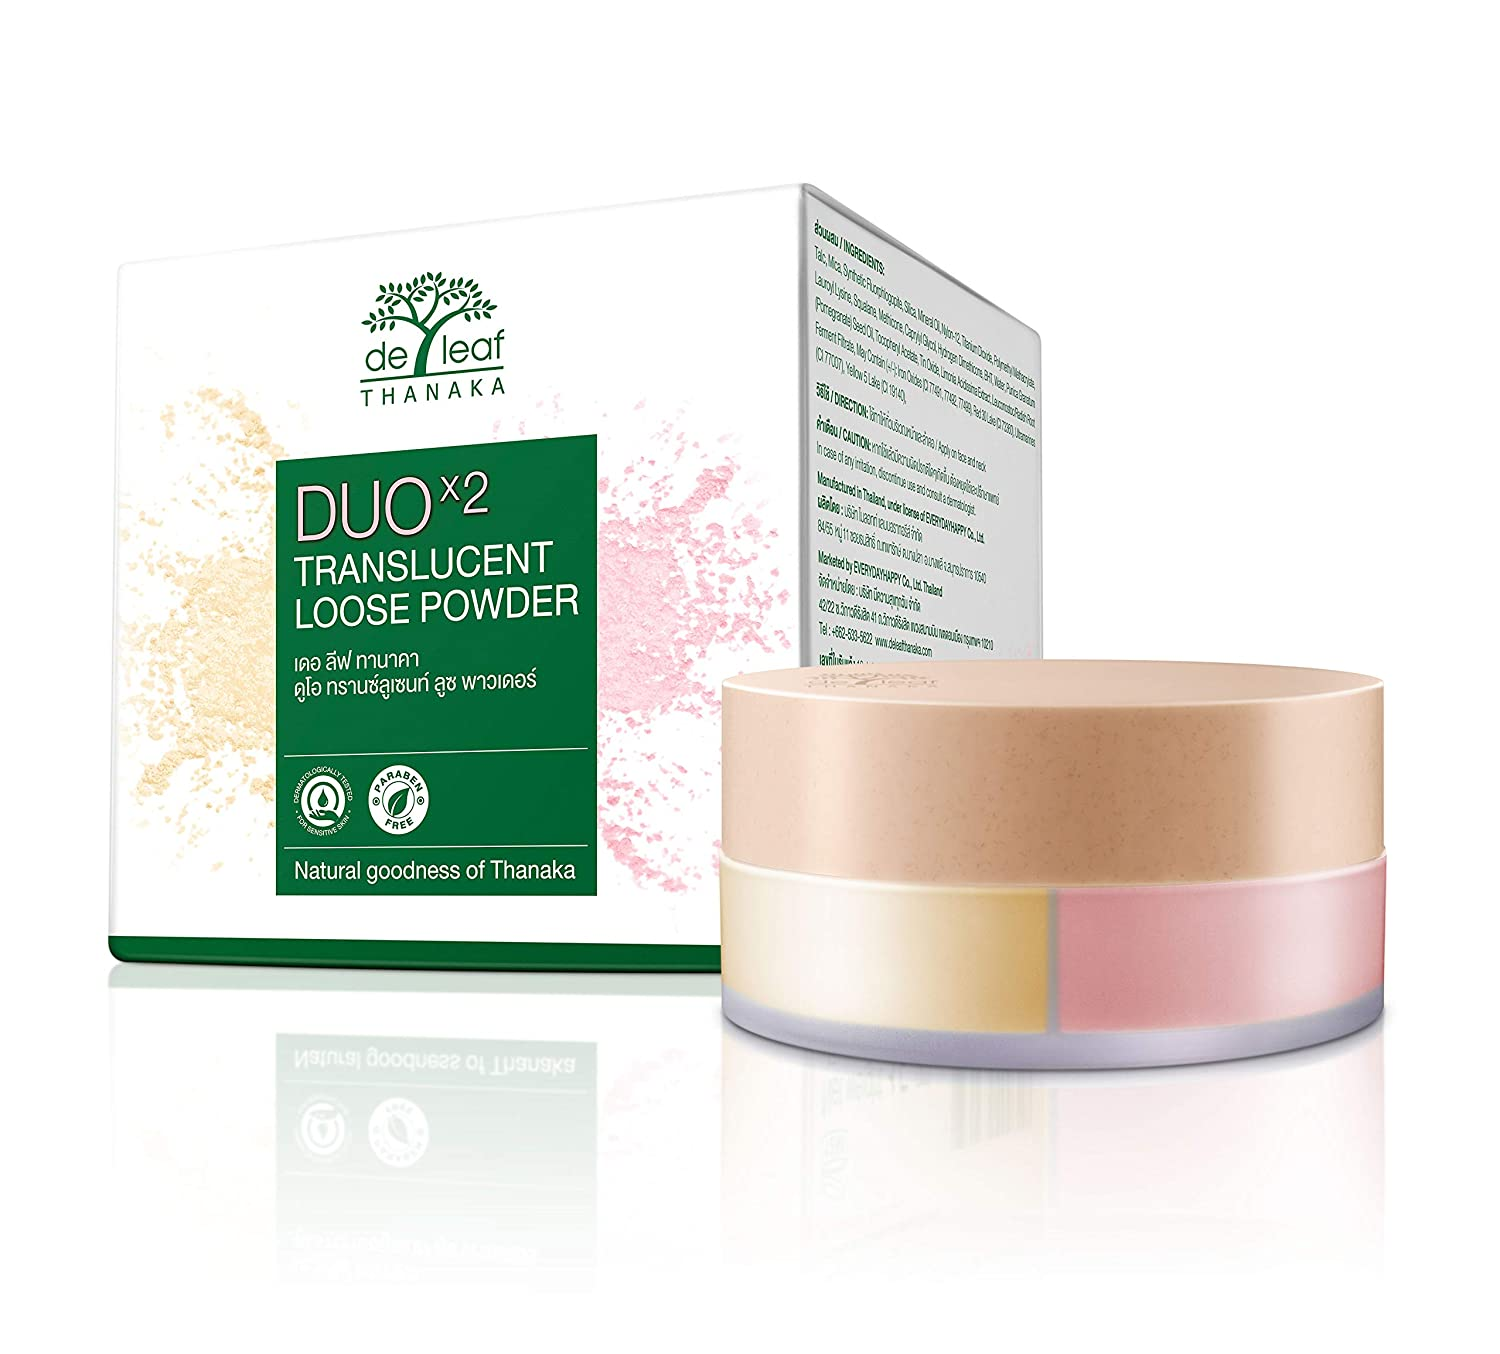 De Leaf Thanaka Duo Translucent Oil Control Paraben Fragrance Free Natural Ingredients Clean Foundation Brightening Matte Makeup Loose Face Setting Powder, 15 g Light Yellow Beige and Pink Pomegranate